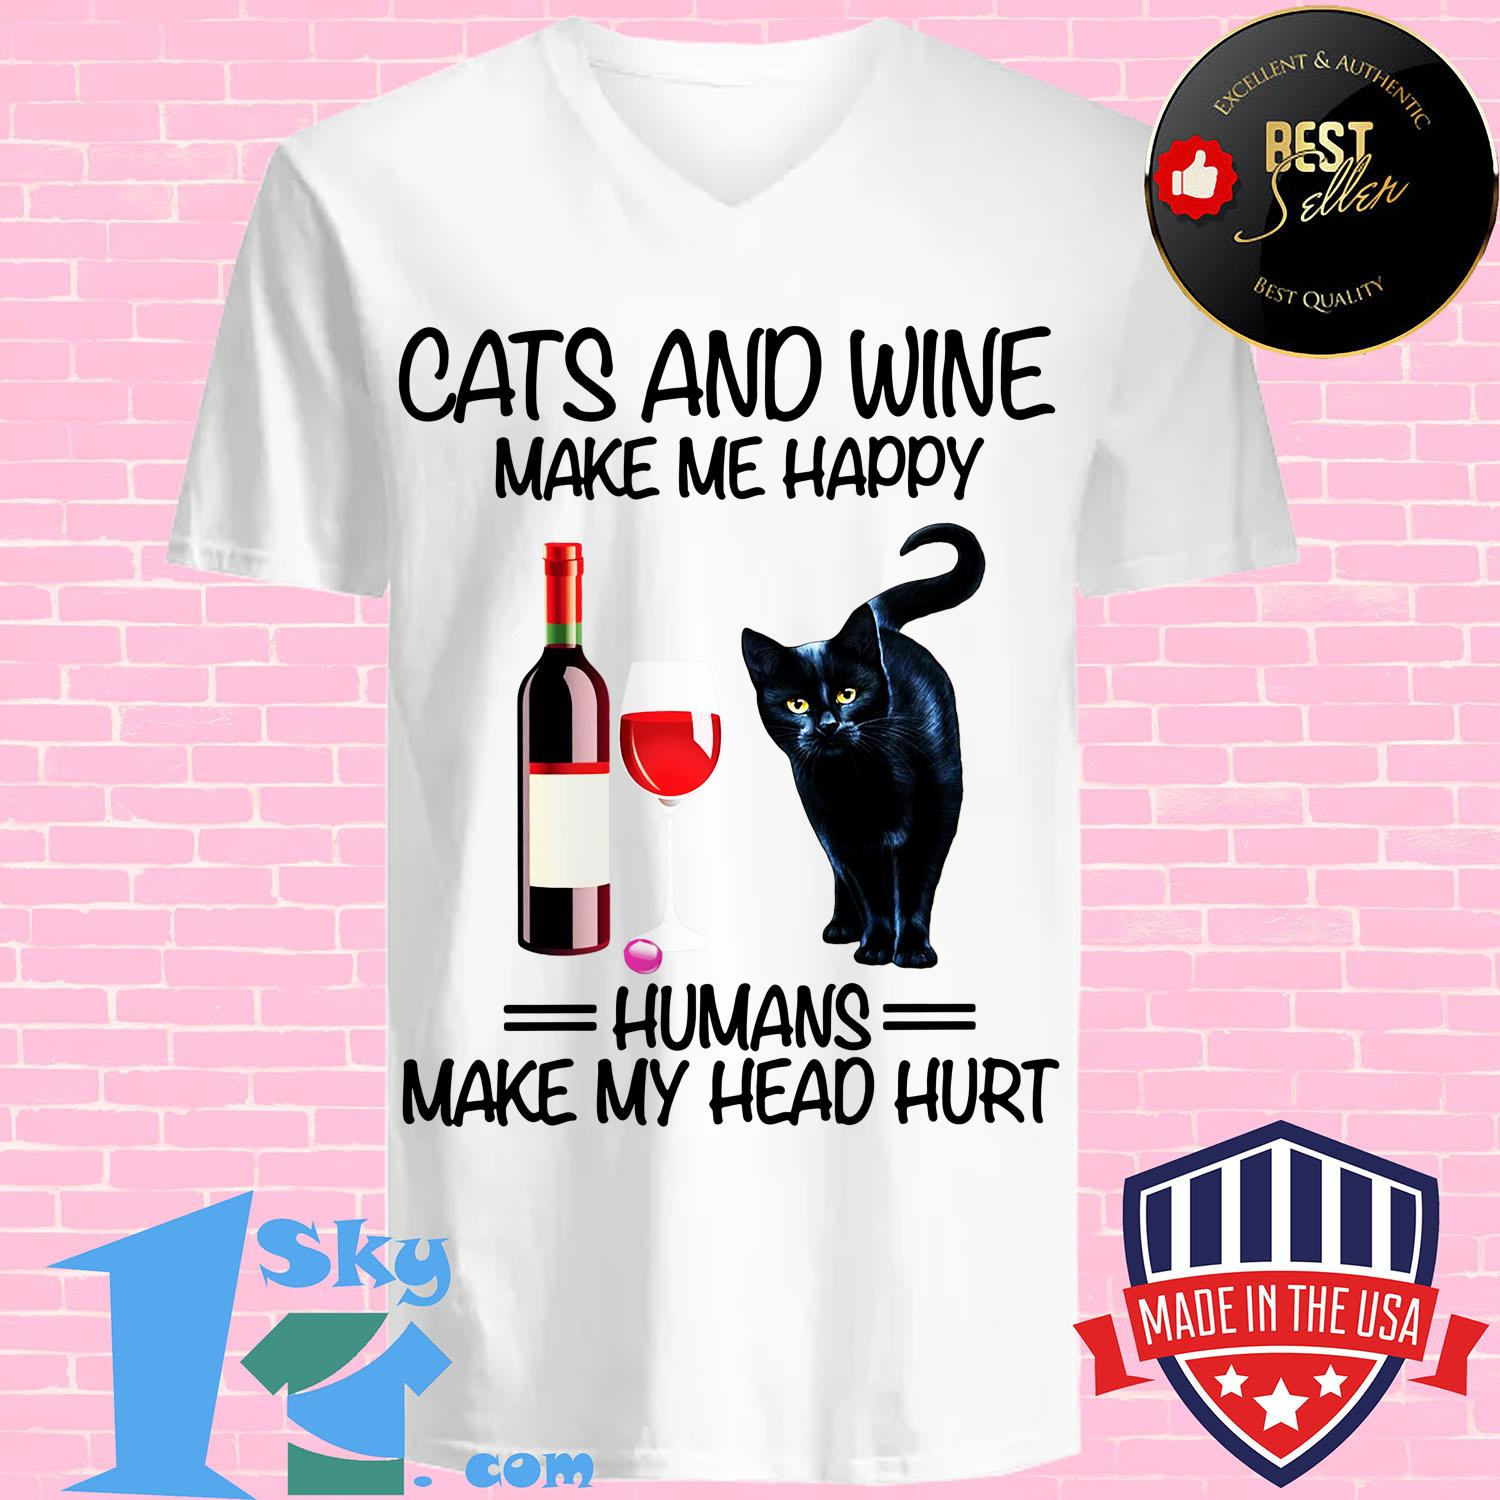 cats and wine make me happy humans make my head hurt v neck - Cats and wine make me happy humans make my head hurt shirt